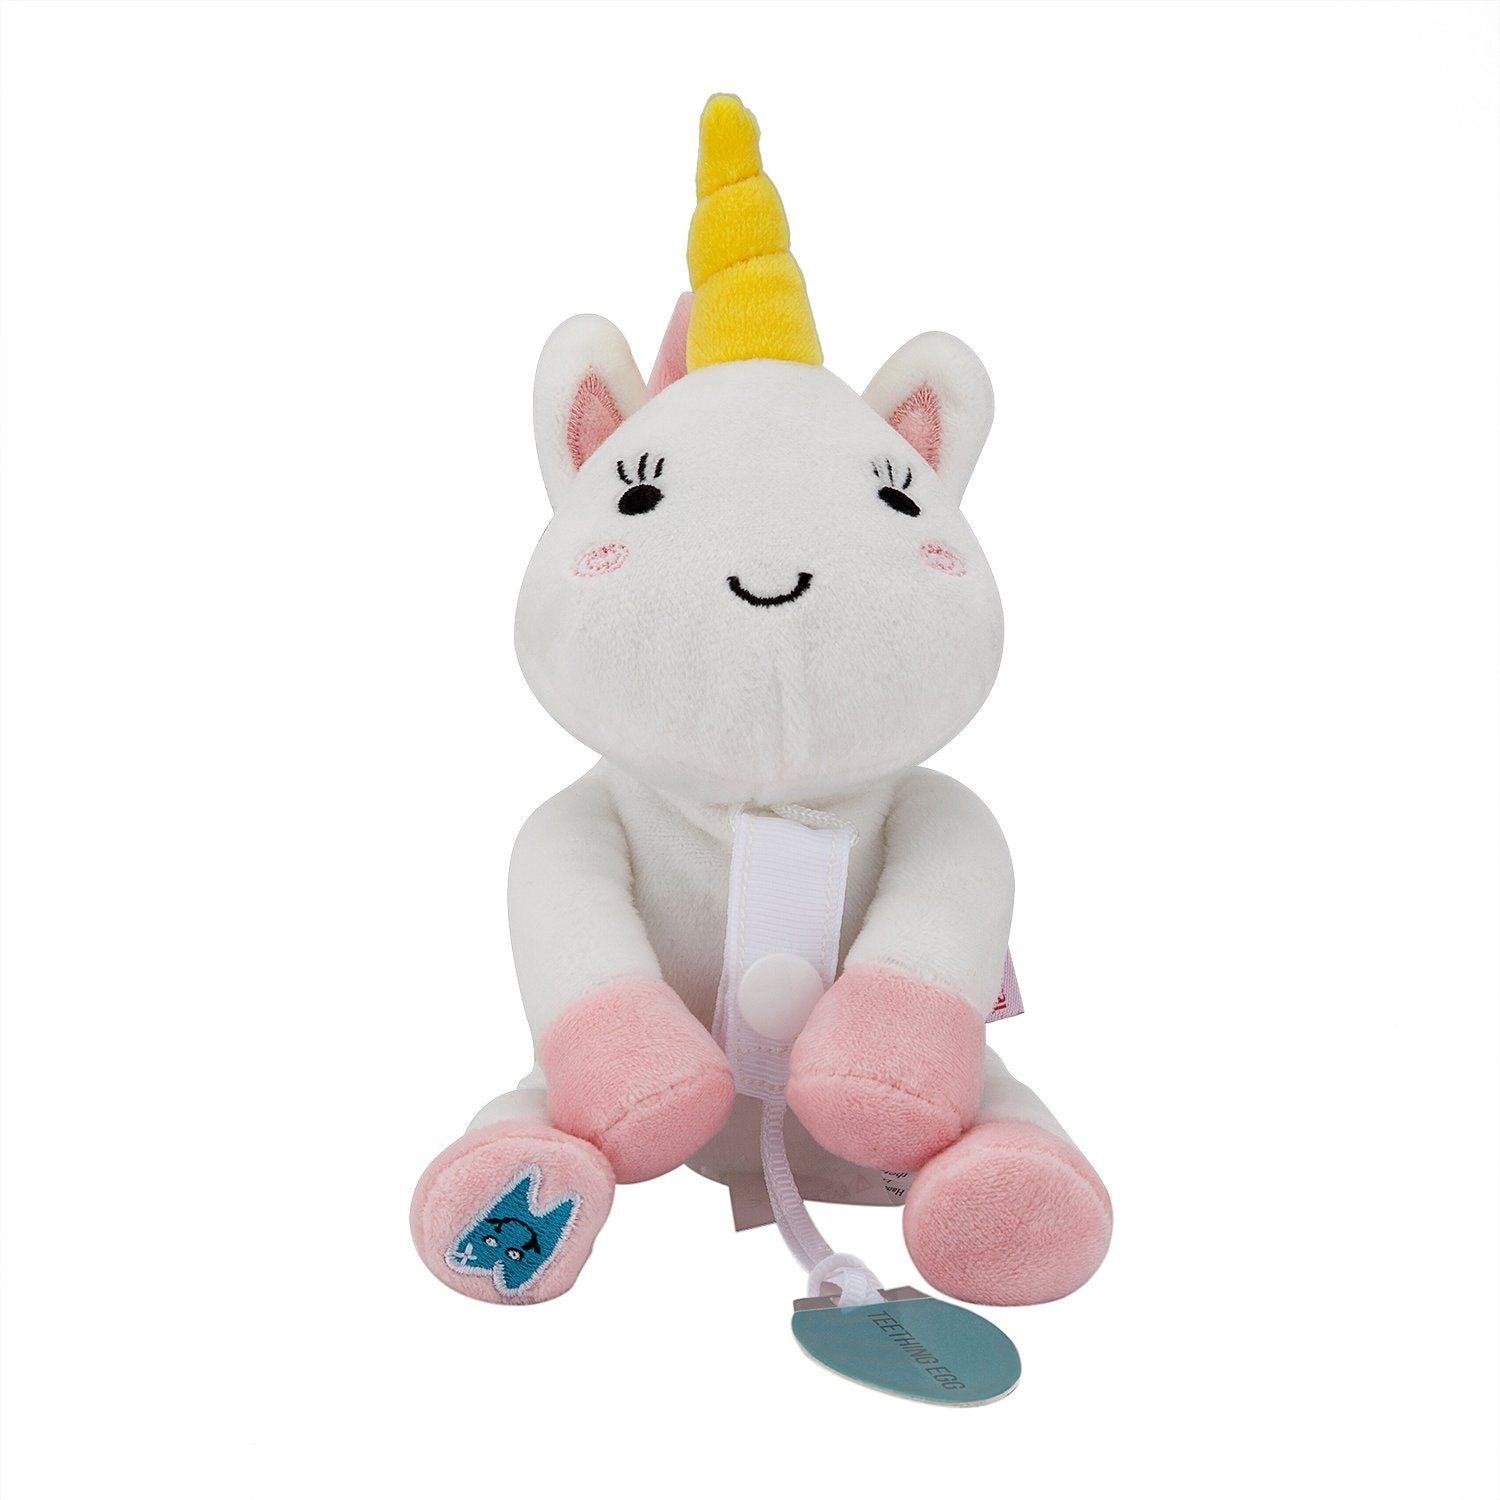 Teething Pal- Uni The Unicorn - Uni The Unicorn Teething Pal